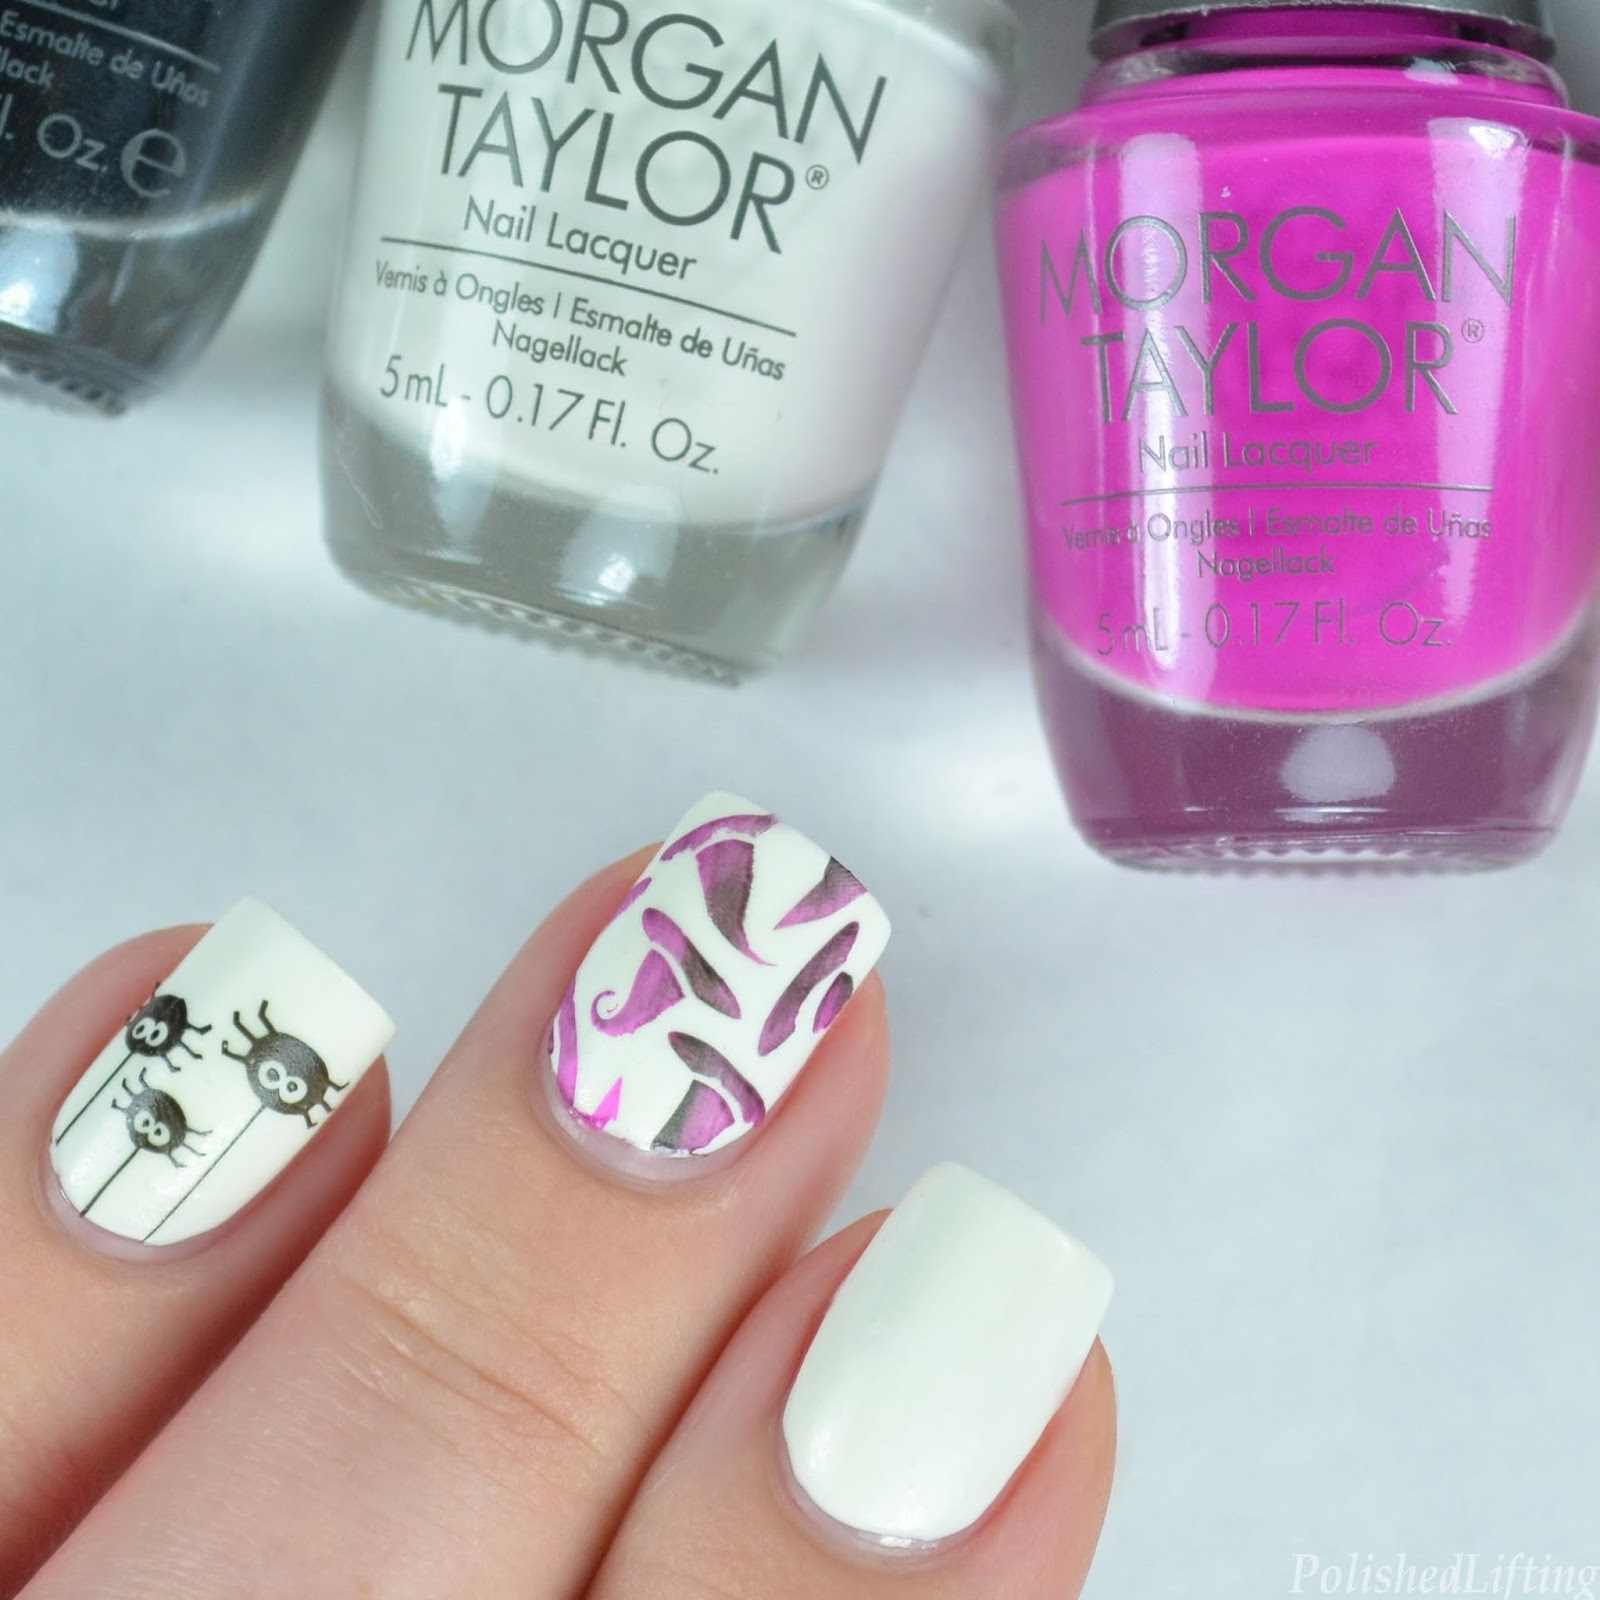 Polished Lifting: Morgan Taylor Halloween Spiders and Witches Hats